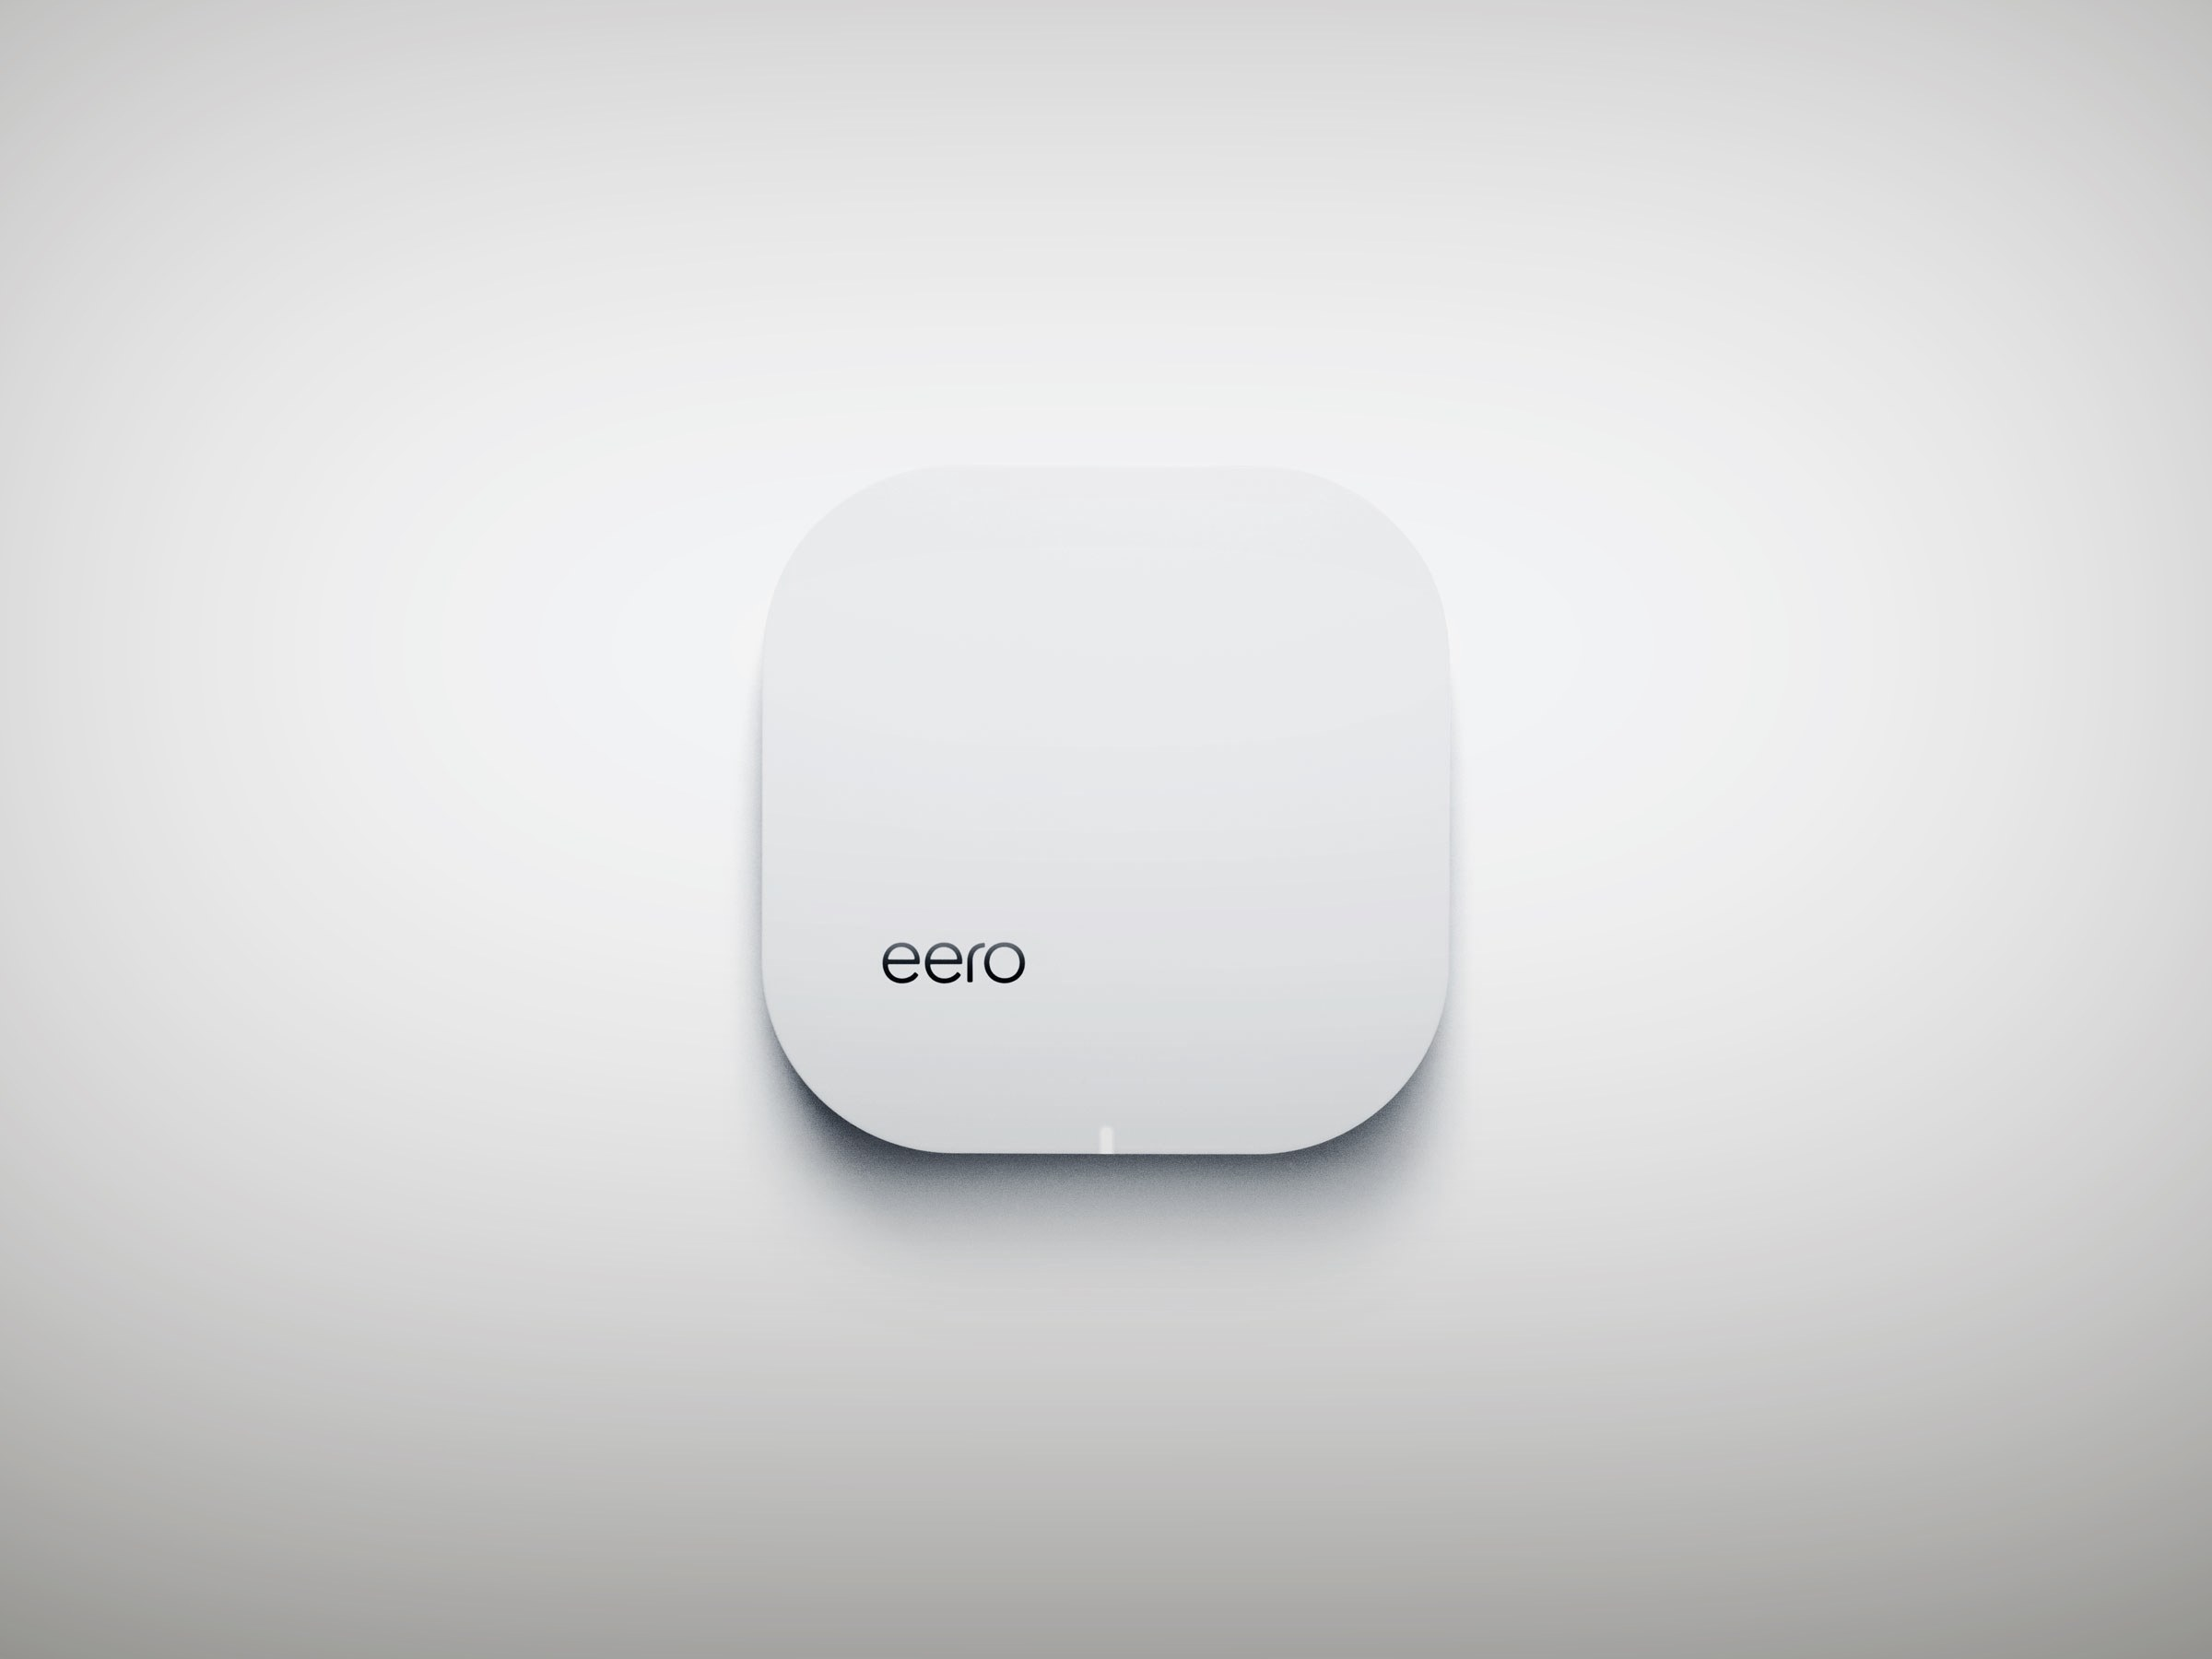 What Amazon's purchase of Eero means for your privacy   TechCrunch